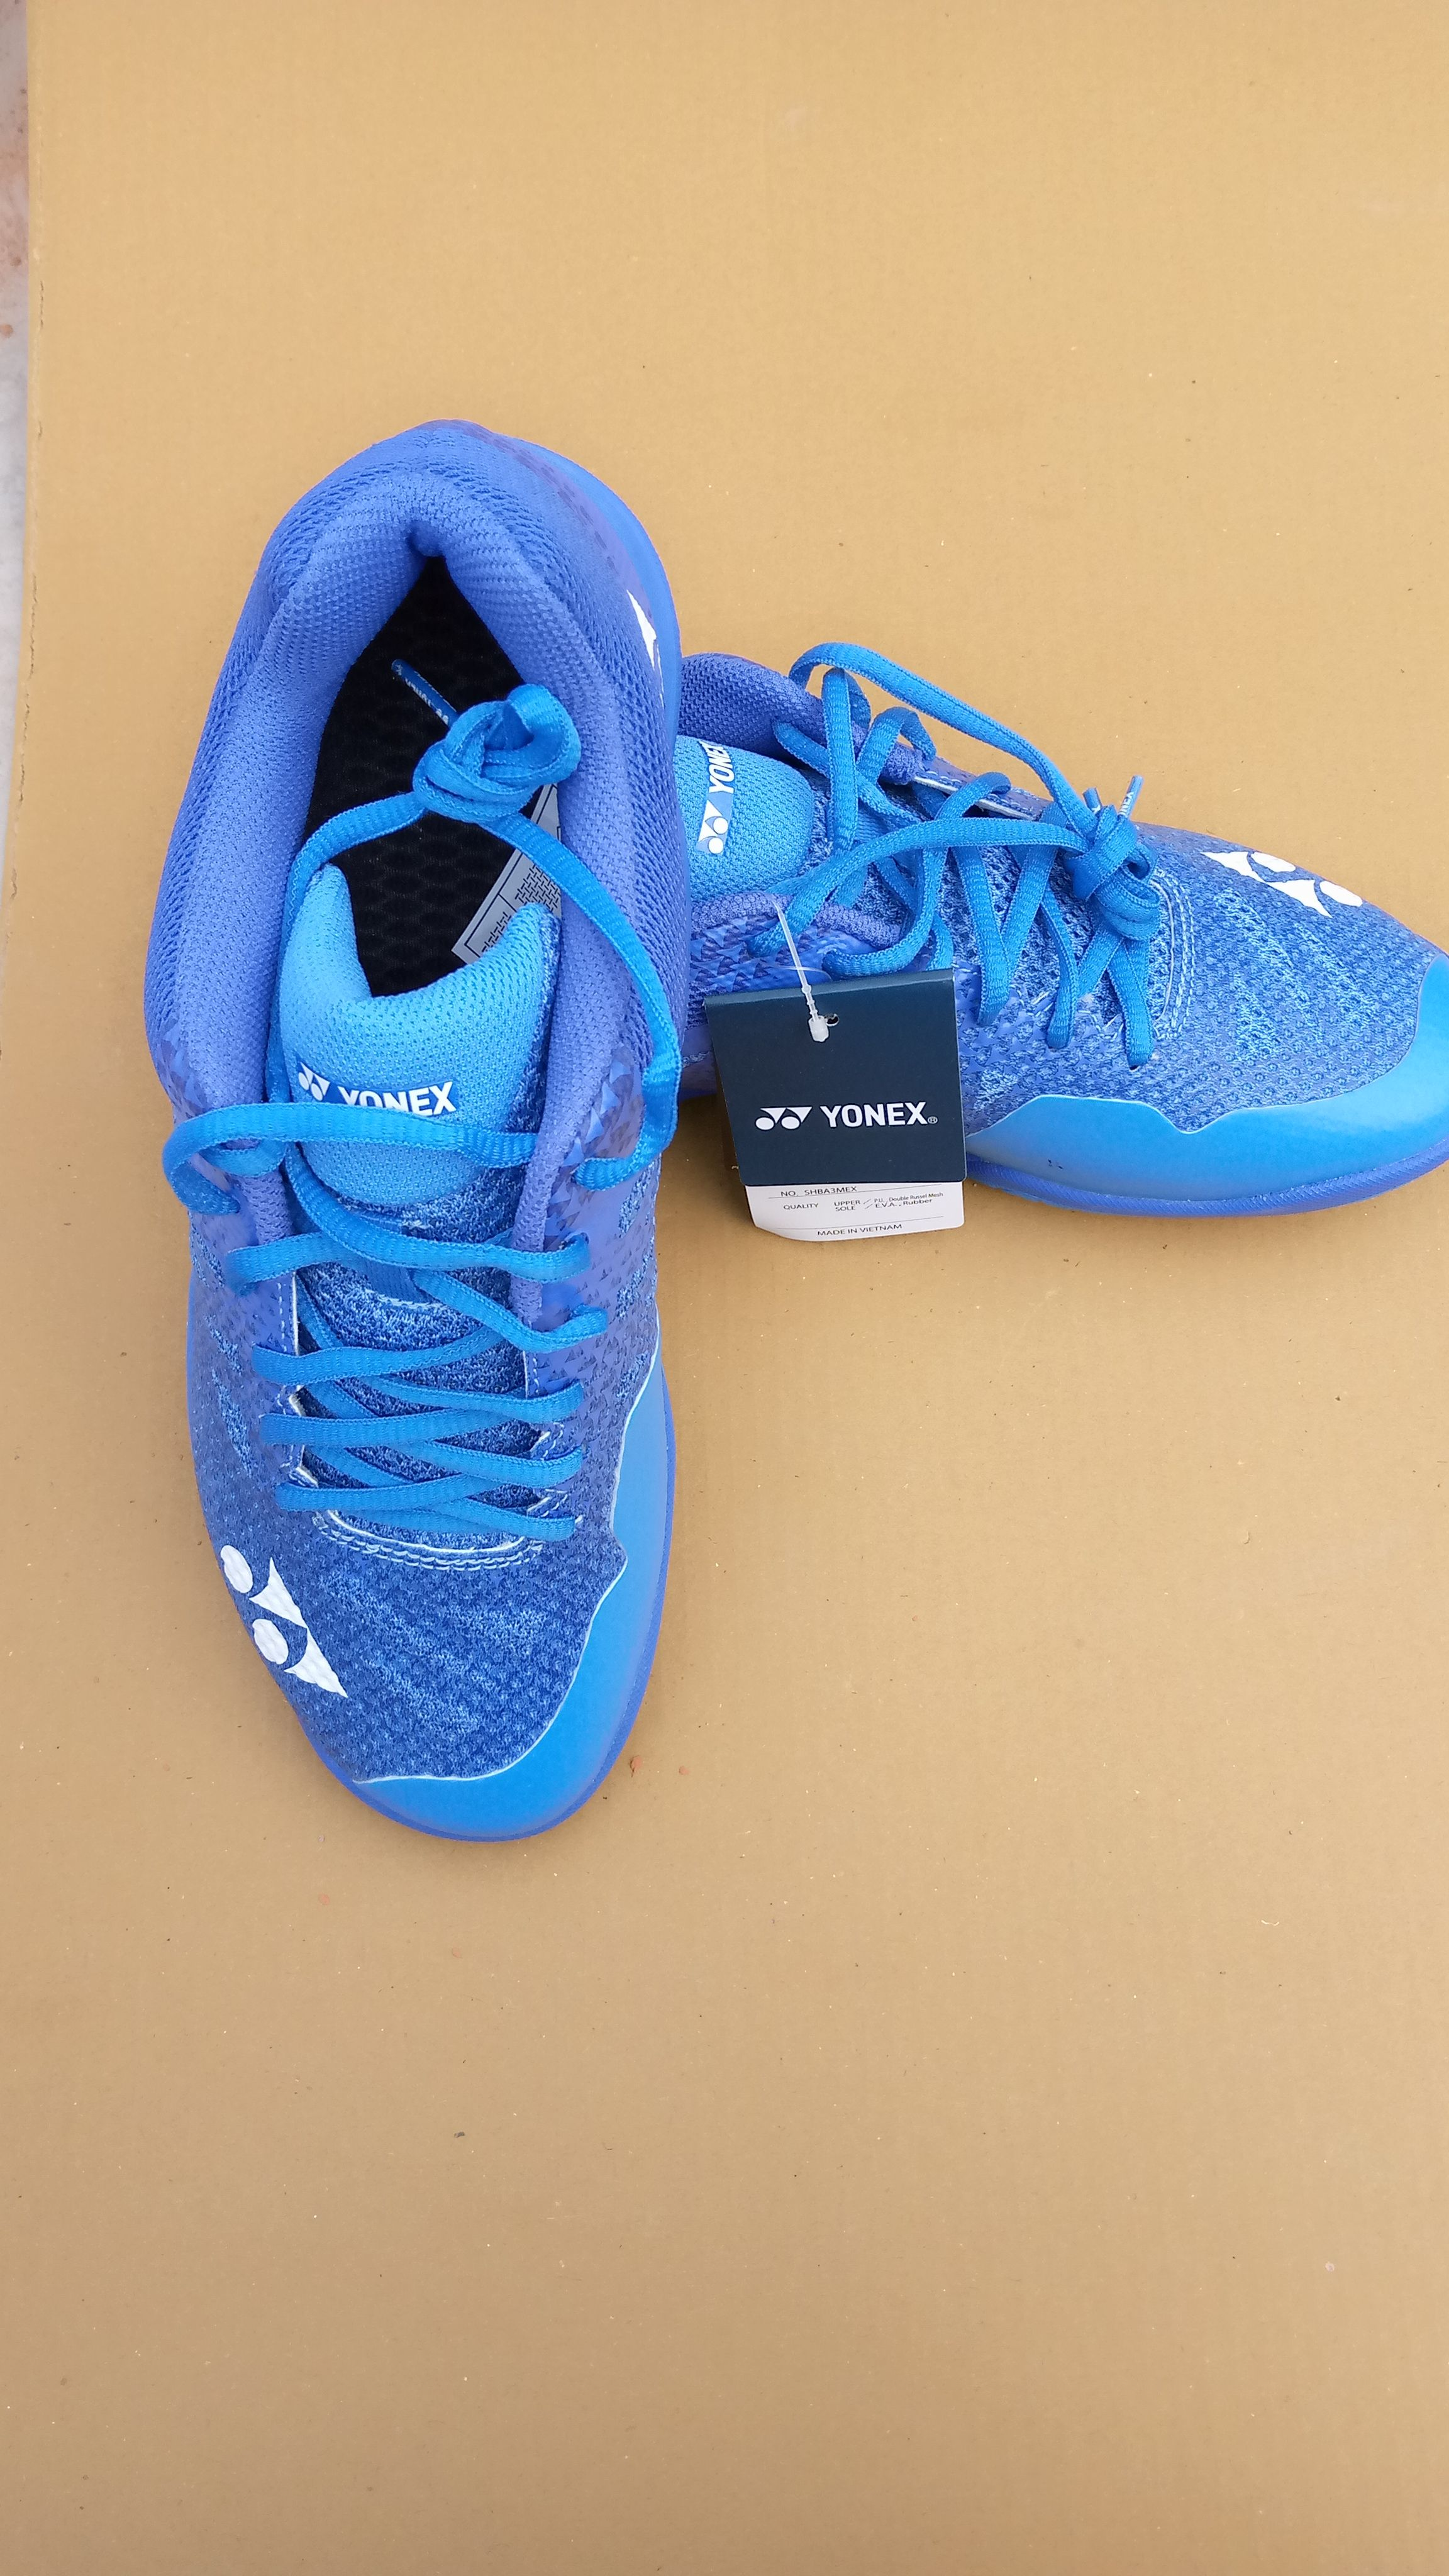 5243f5f97b7 Yonex has launched SHB Aerus 3 Badminton Shoes model in Blue color with a  high level